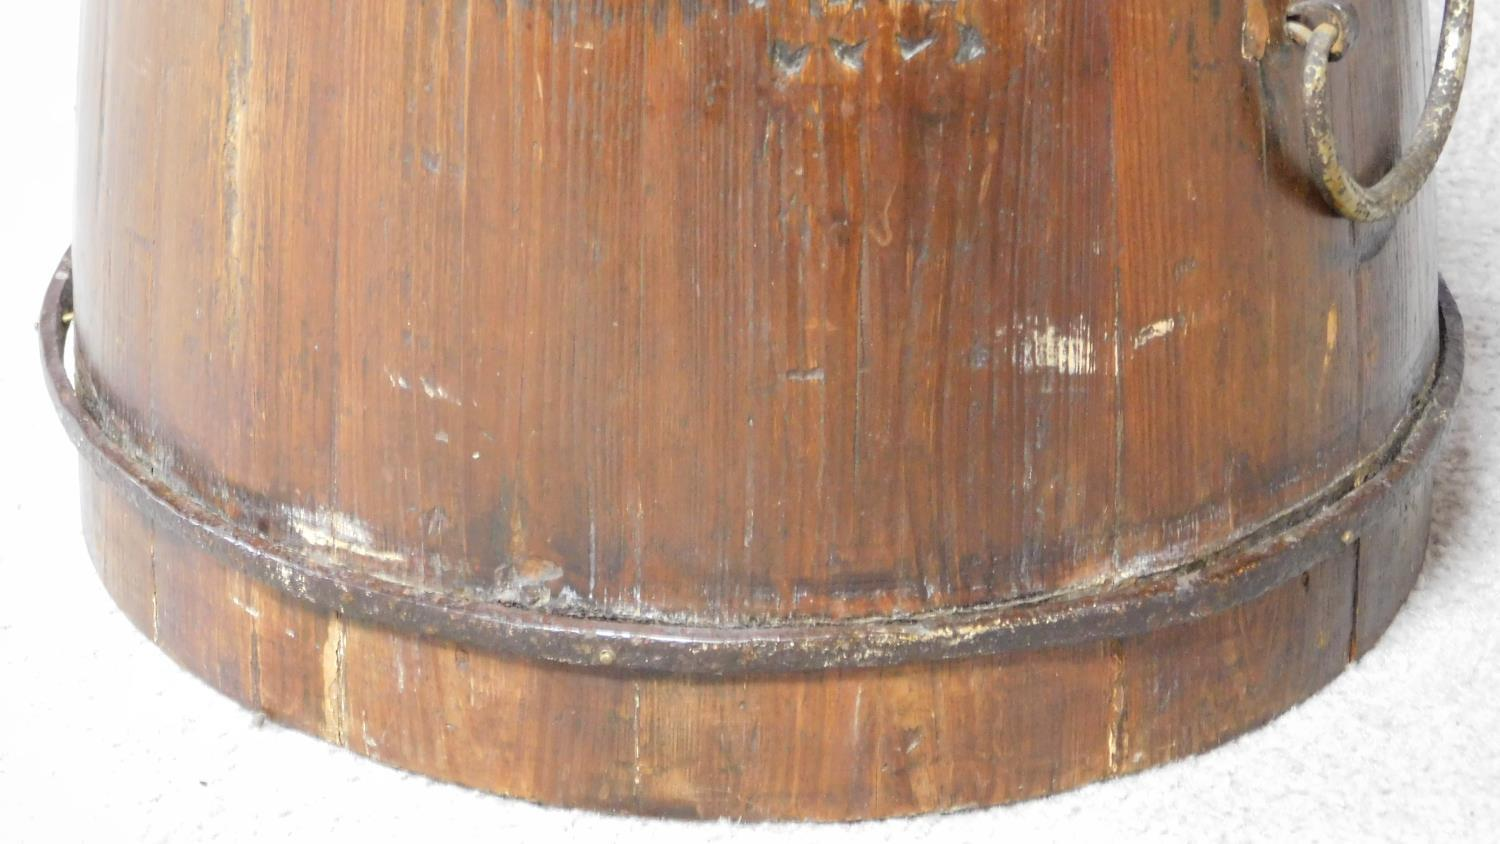 Lot 11 - A 19th century wooden Chinese grain bucket with carved Chinese characters to the side. Brass handles